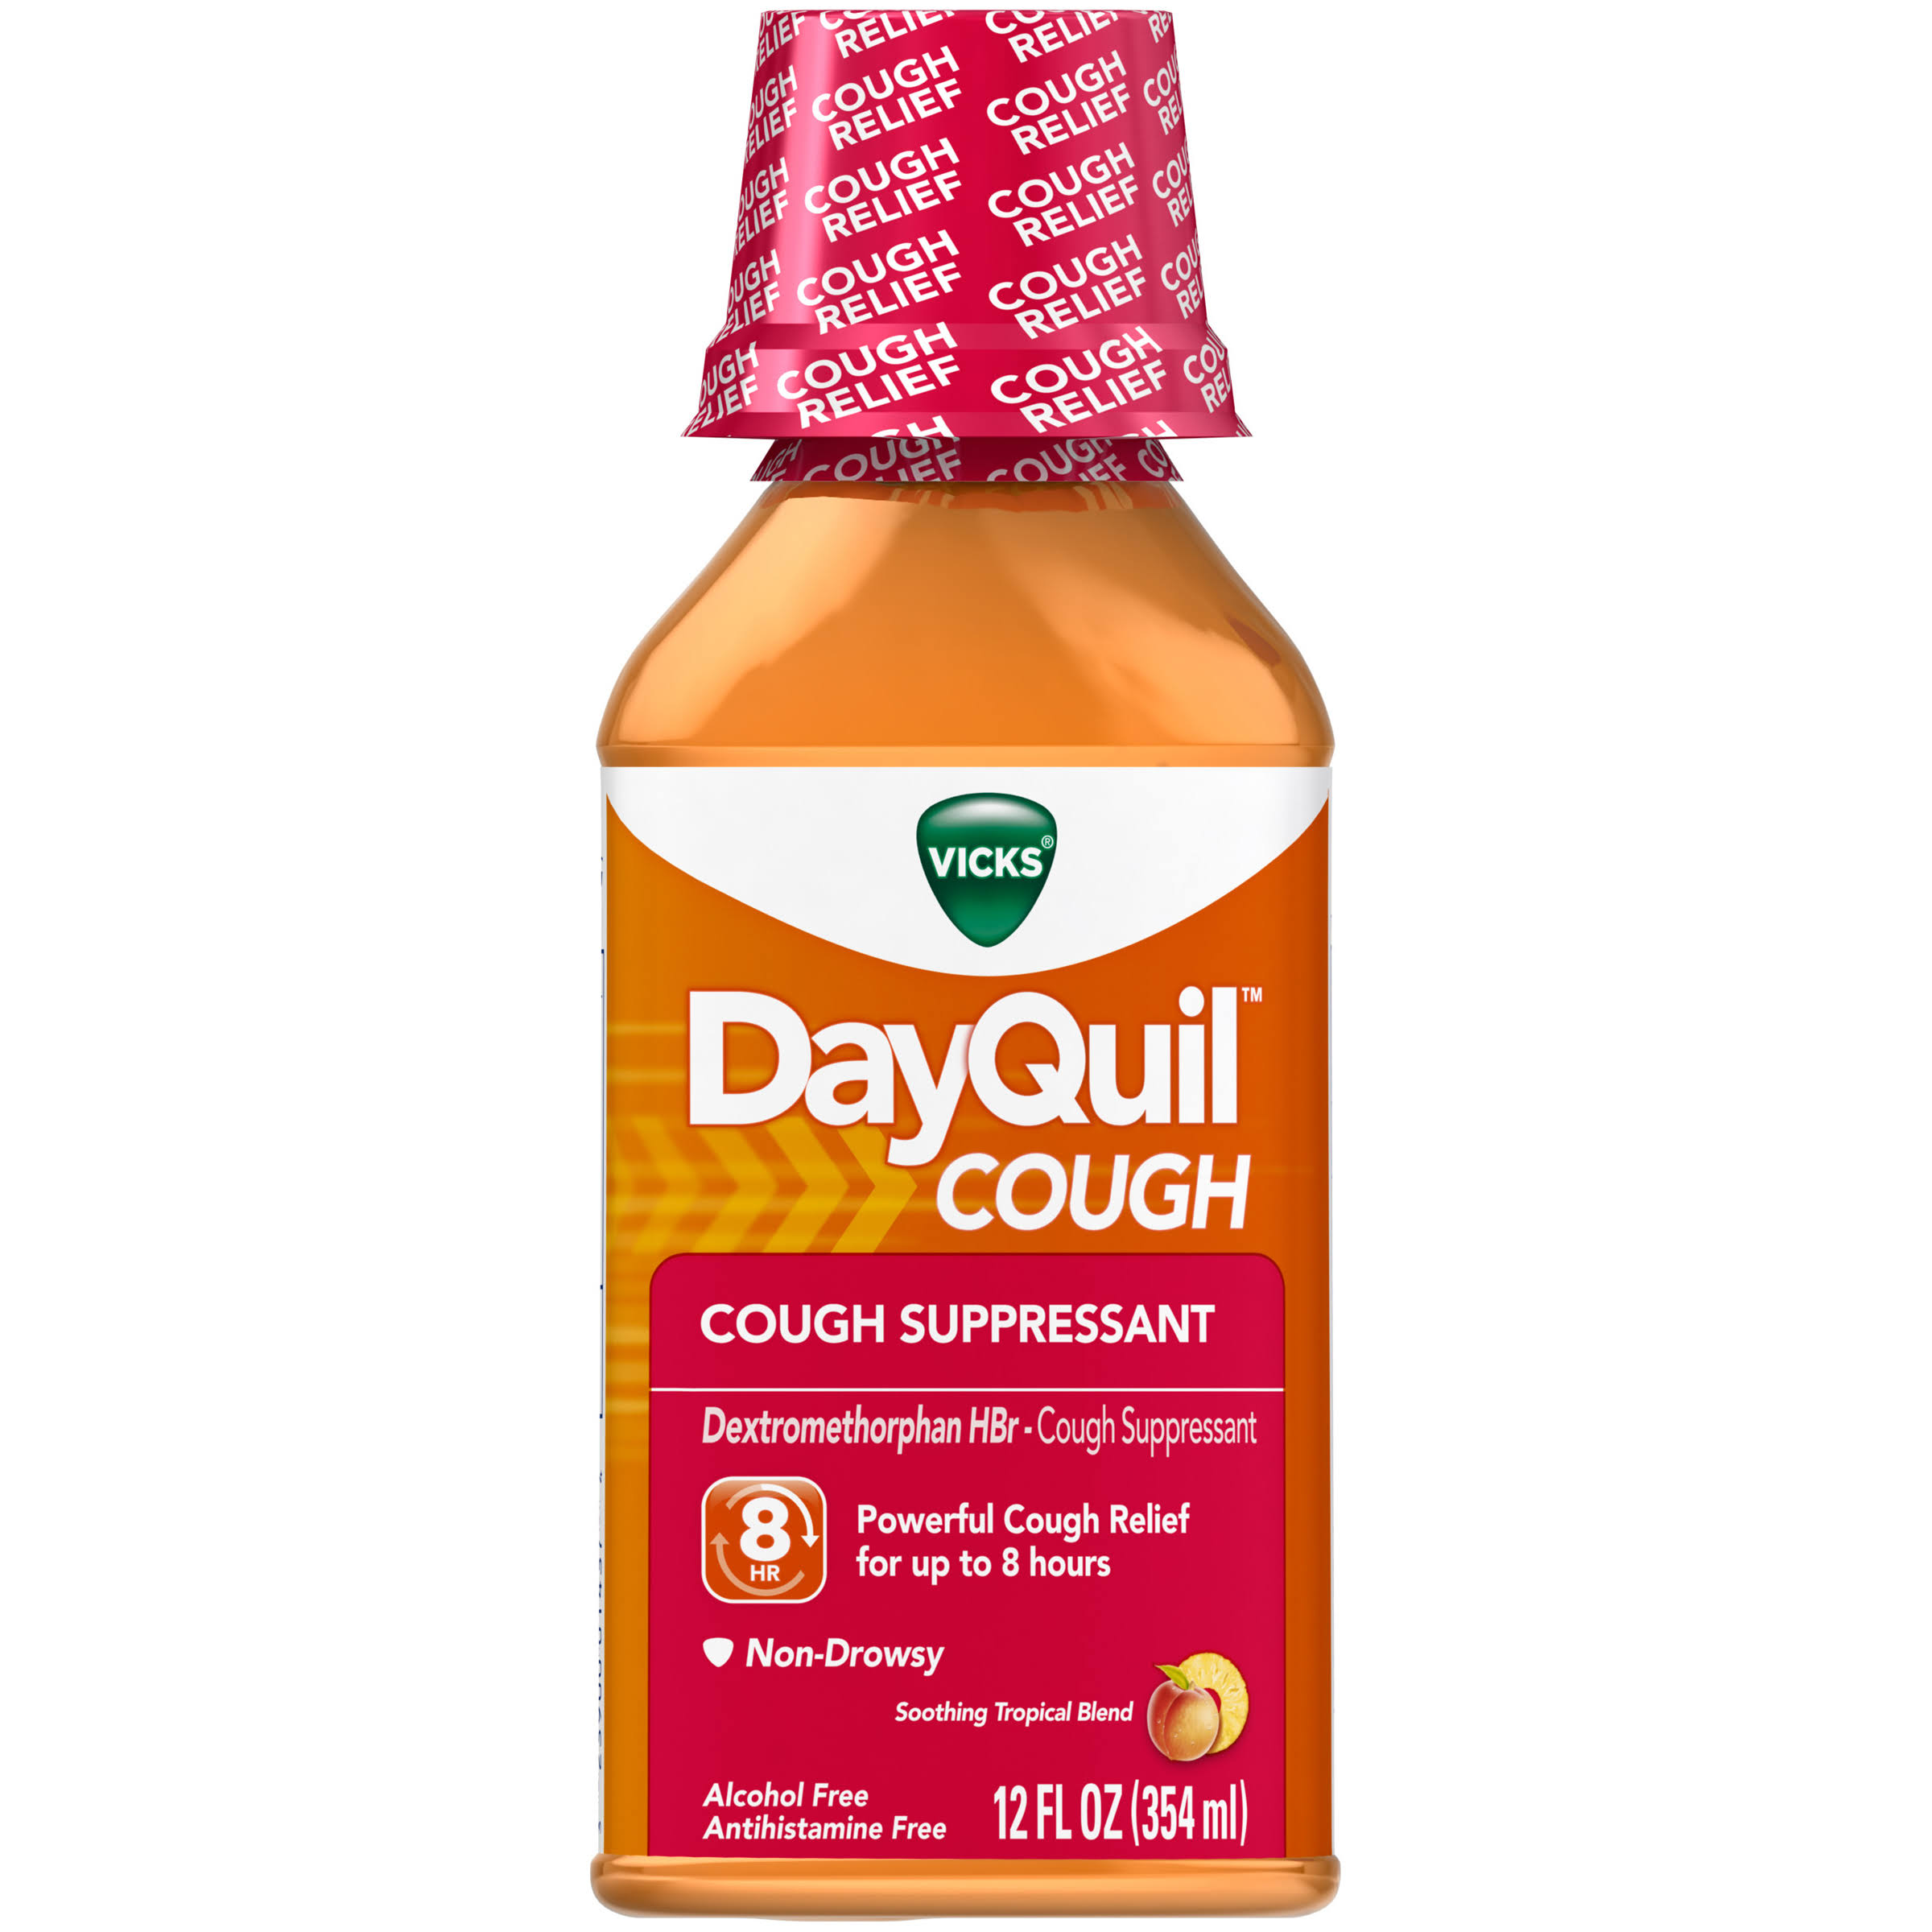 Vicks DayQuil Cough Soothing Tropical Blend Liquid - 12 fl oz bottle